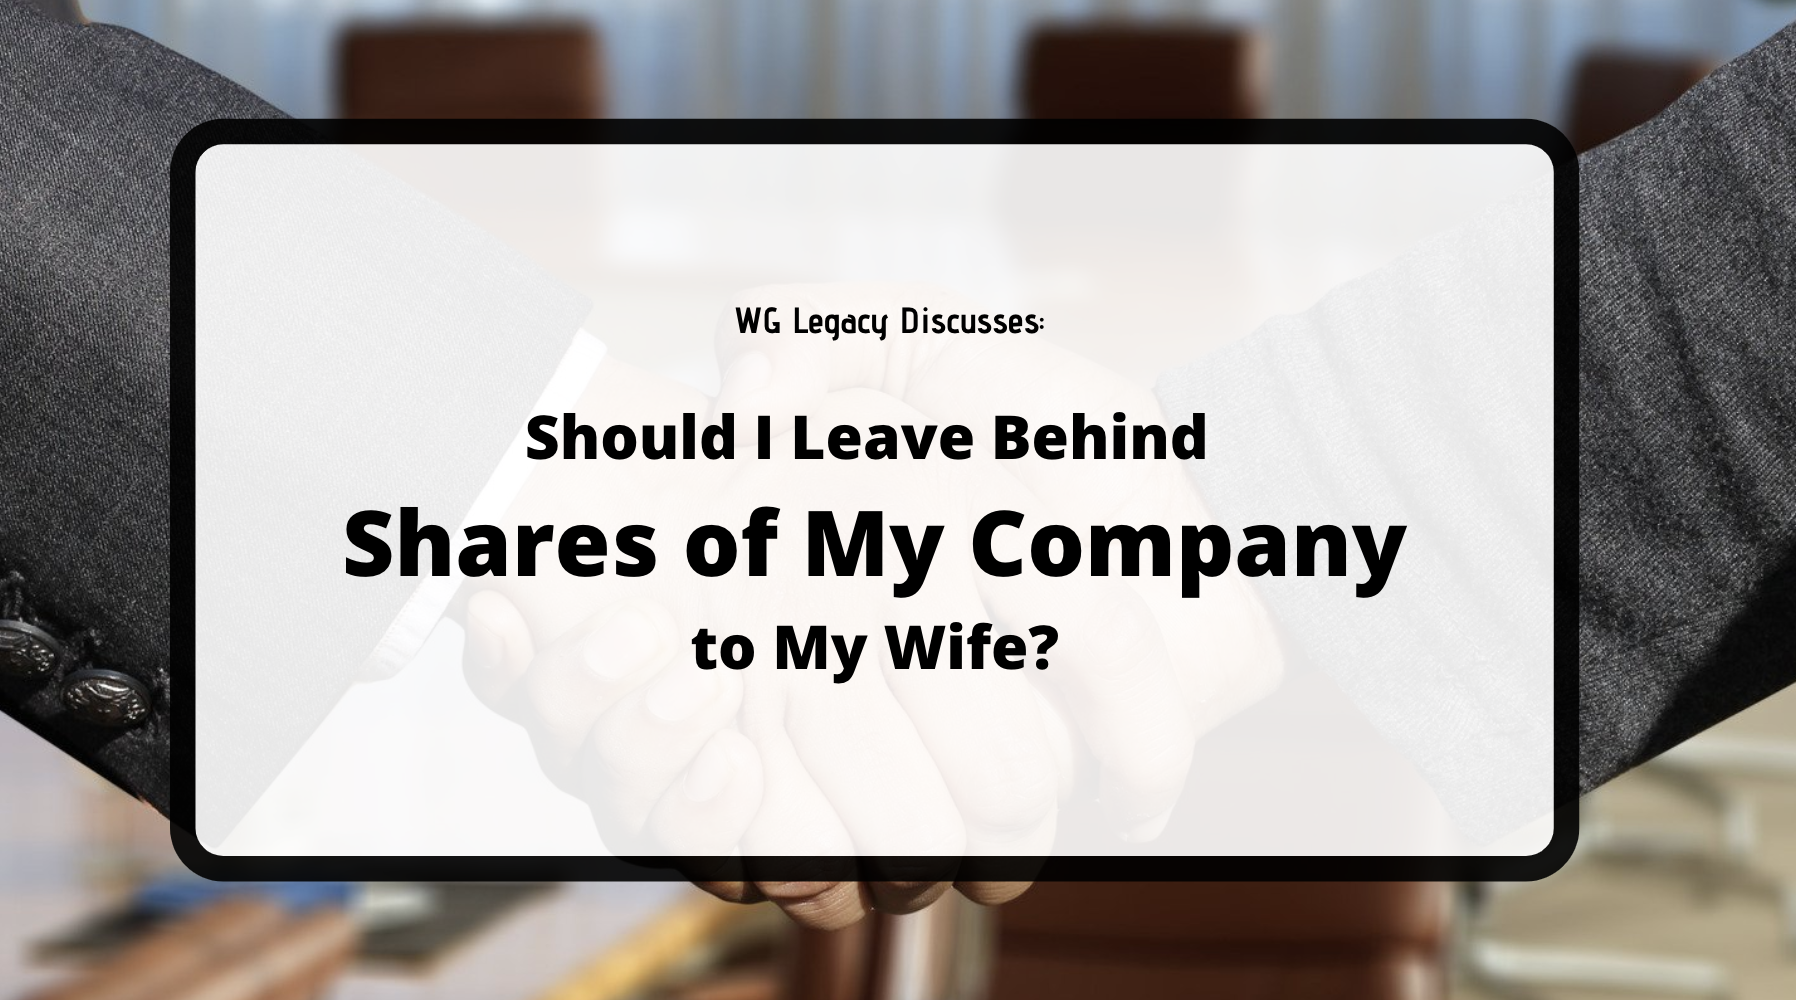 Should I Leave Behind Shares of My Company to My Wife?